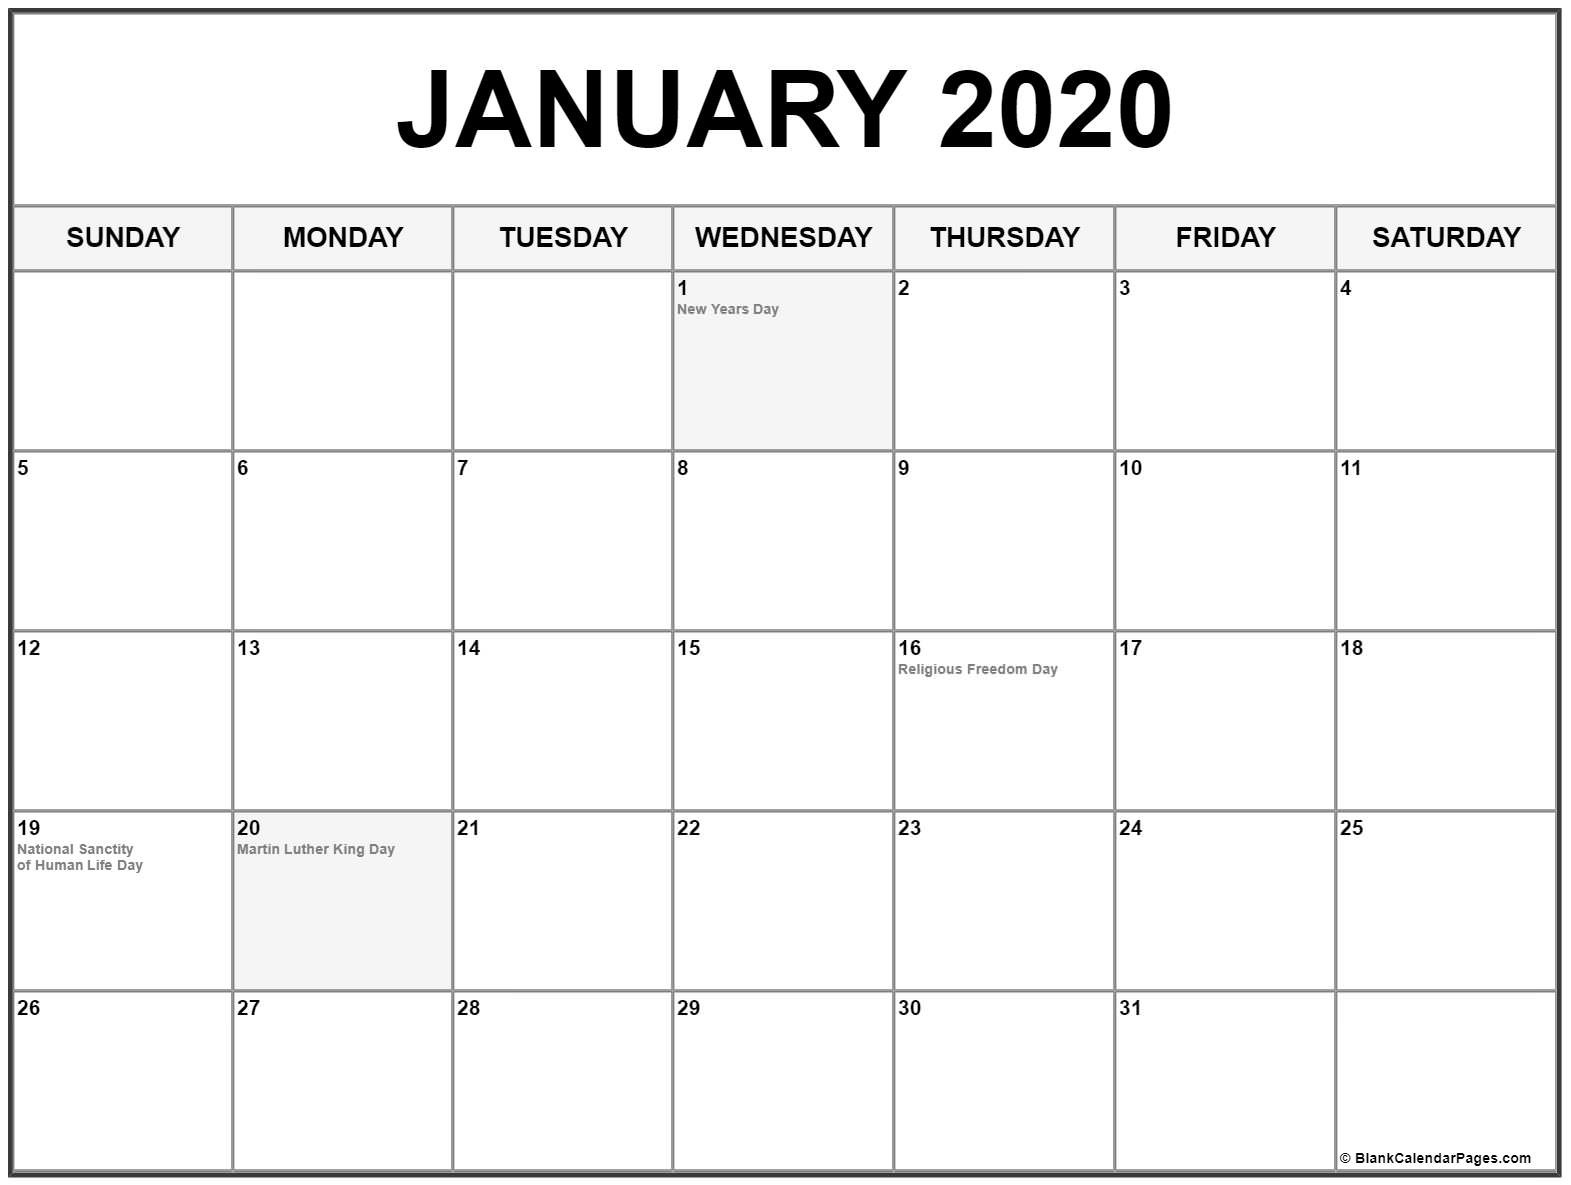 Collection Of January 2020 Calendars With Holidays-January 2020 Calendar Holidays